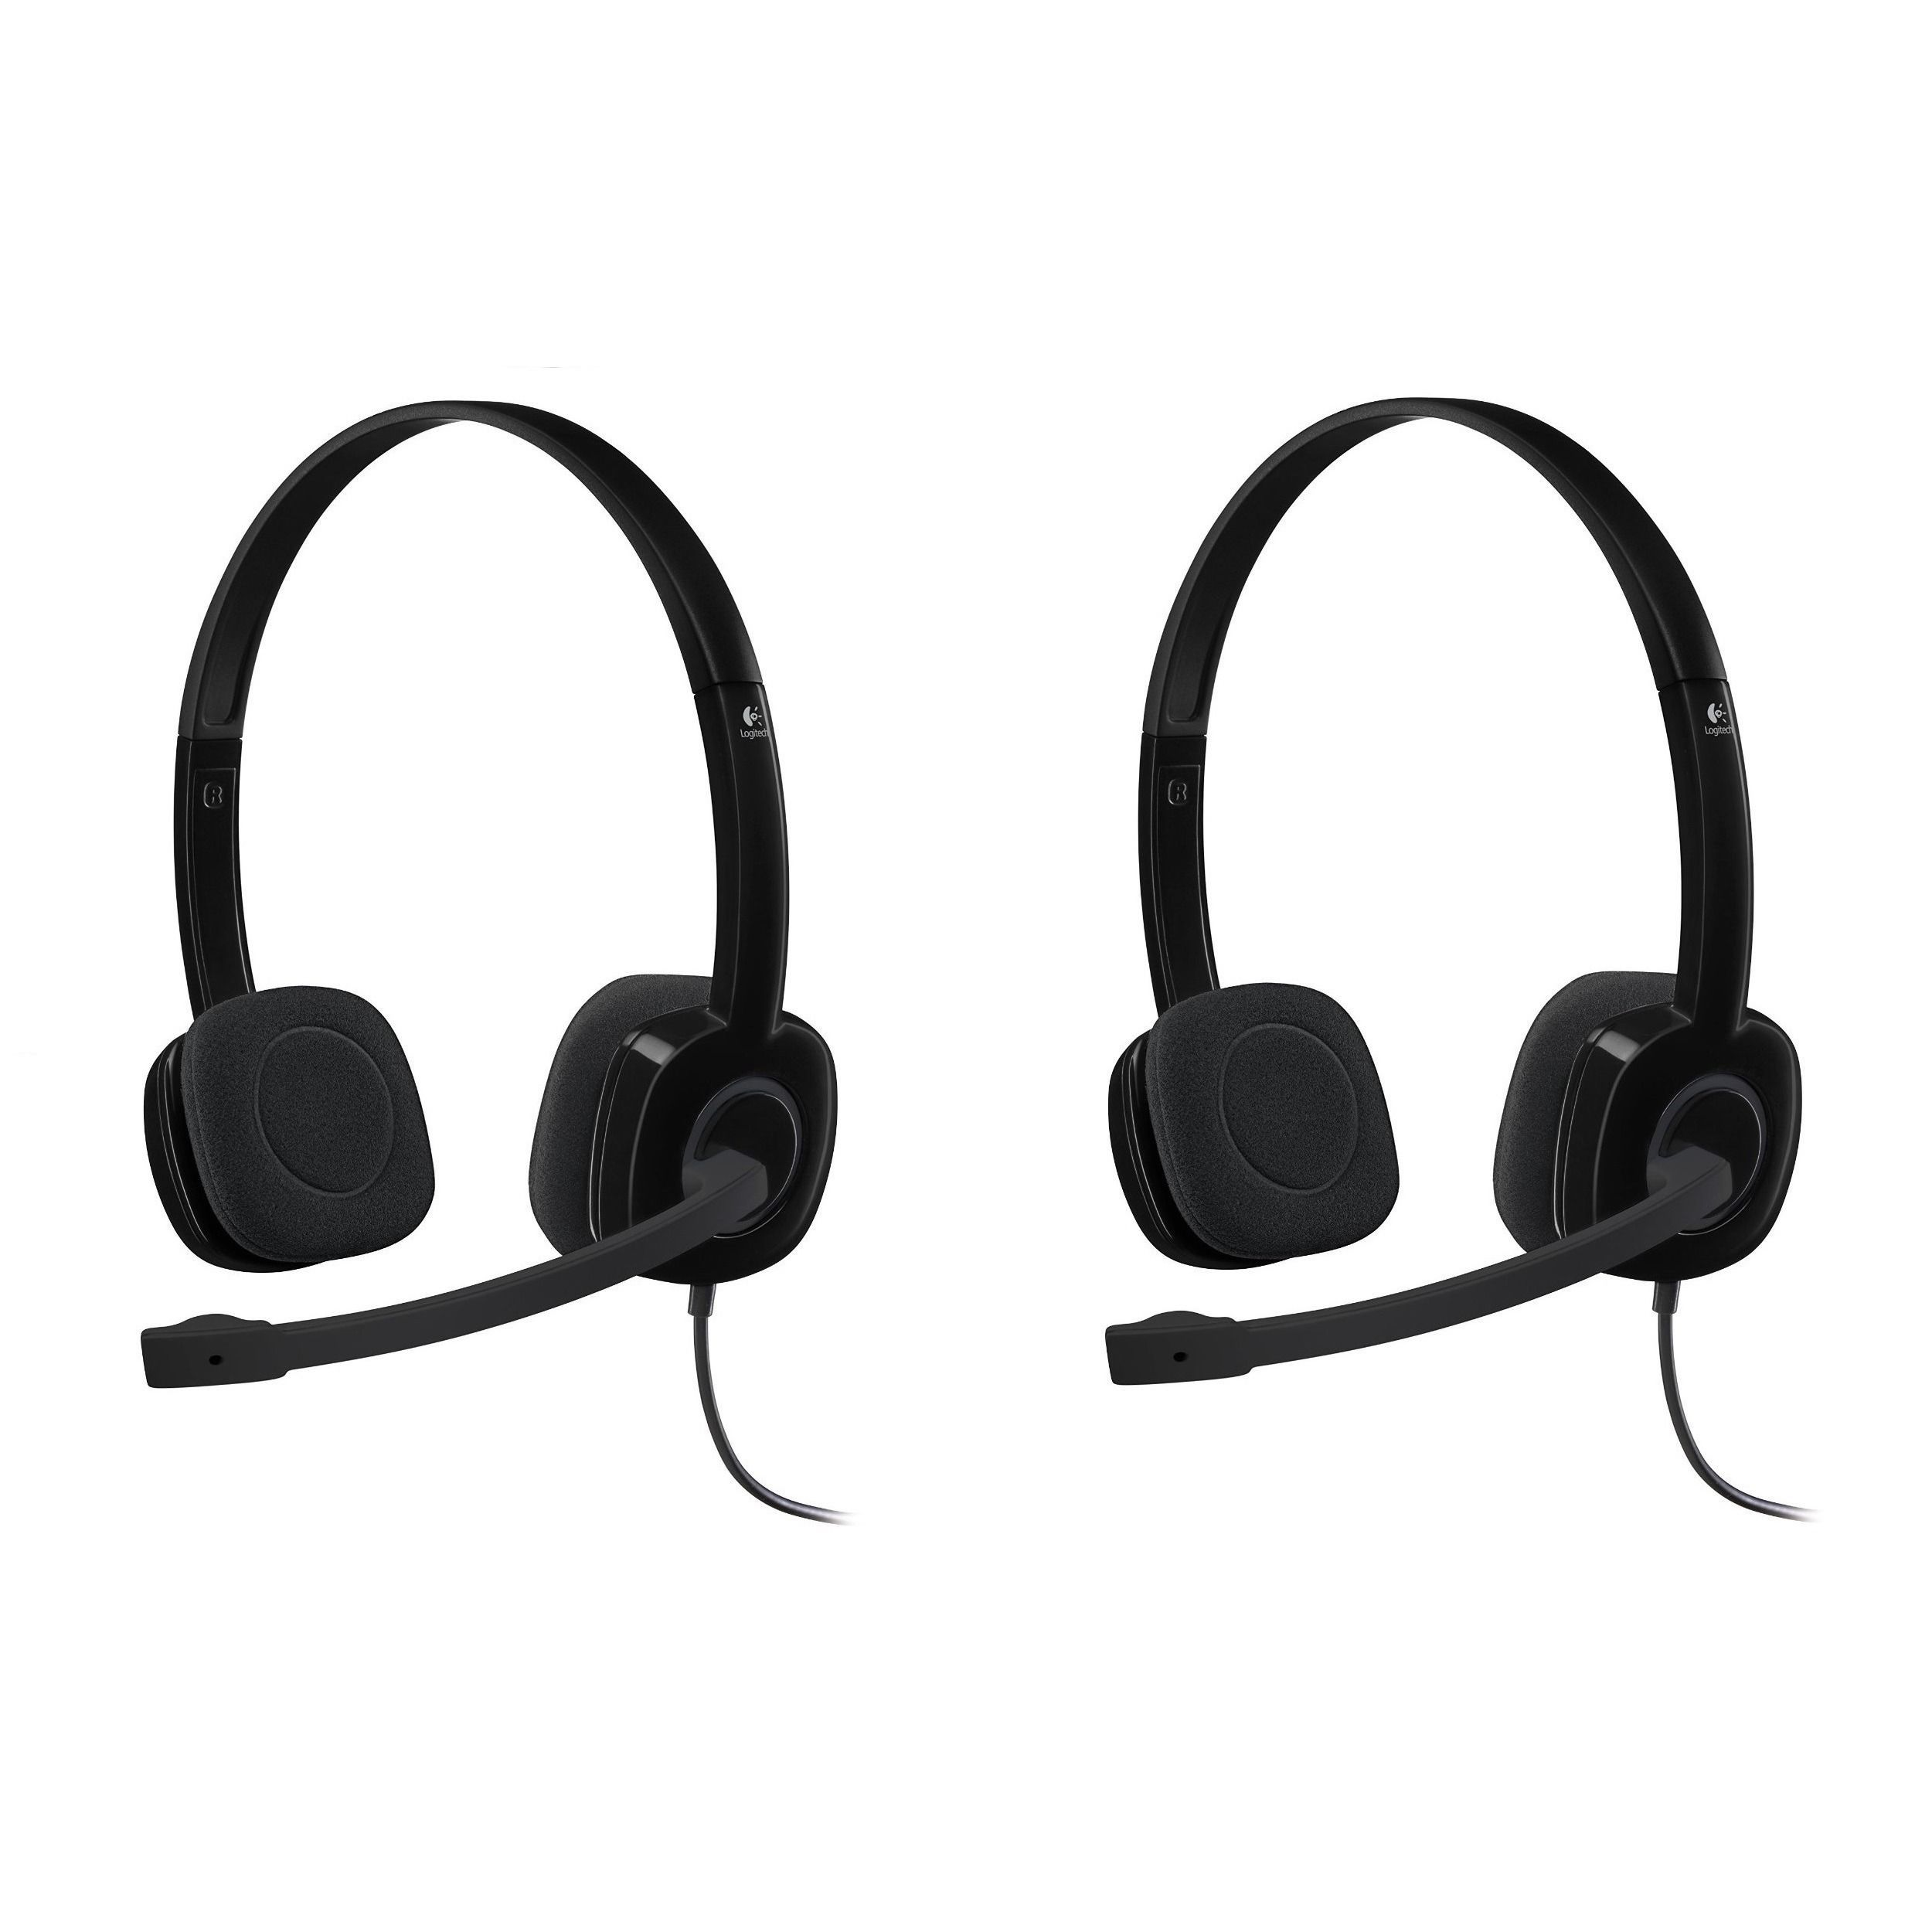 Logitech stereo headset h products pinterest